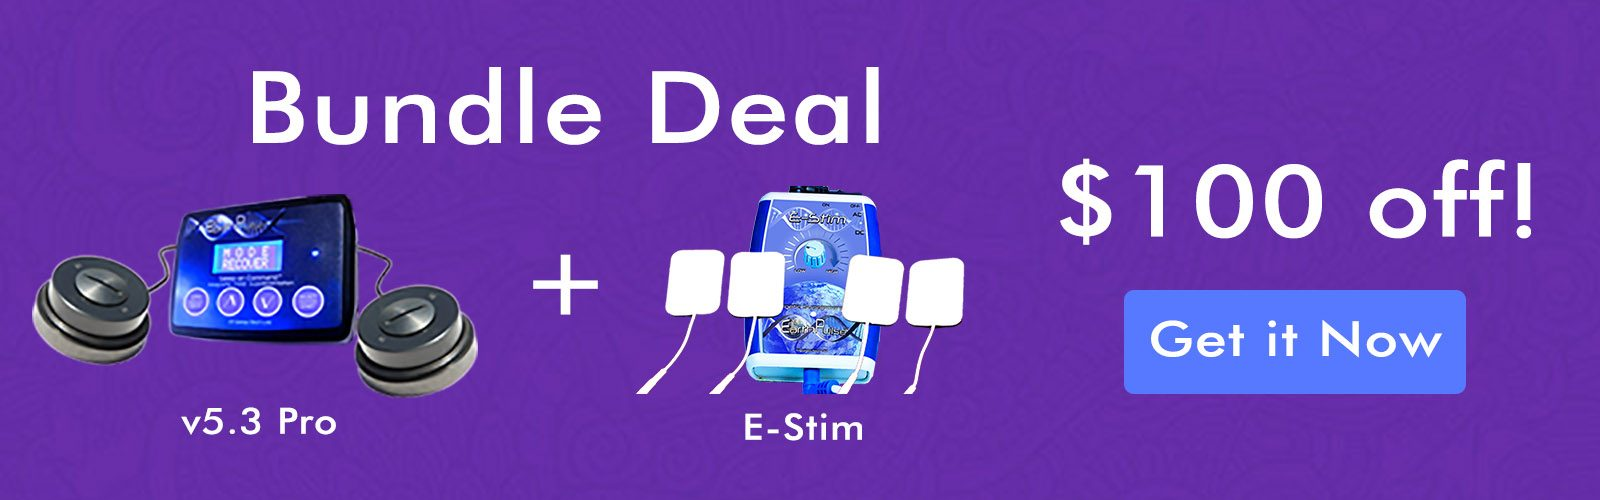 PEMF Therapy and electric stim devices bundle discount offer